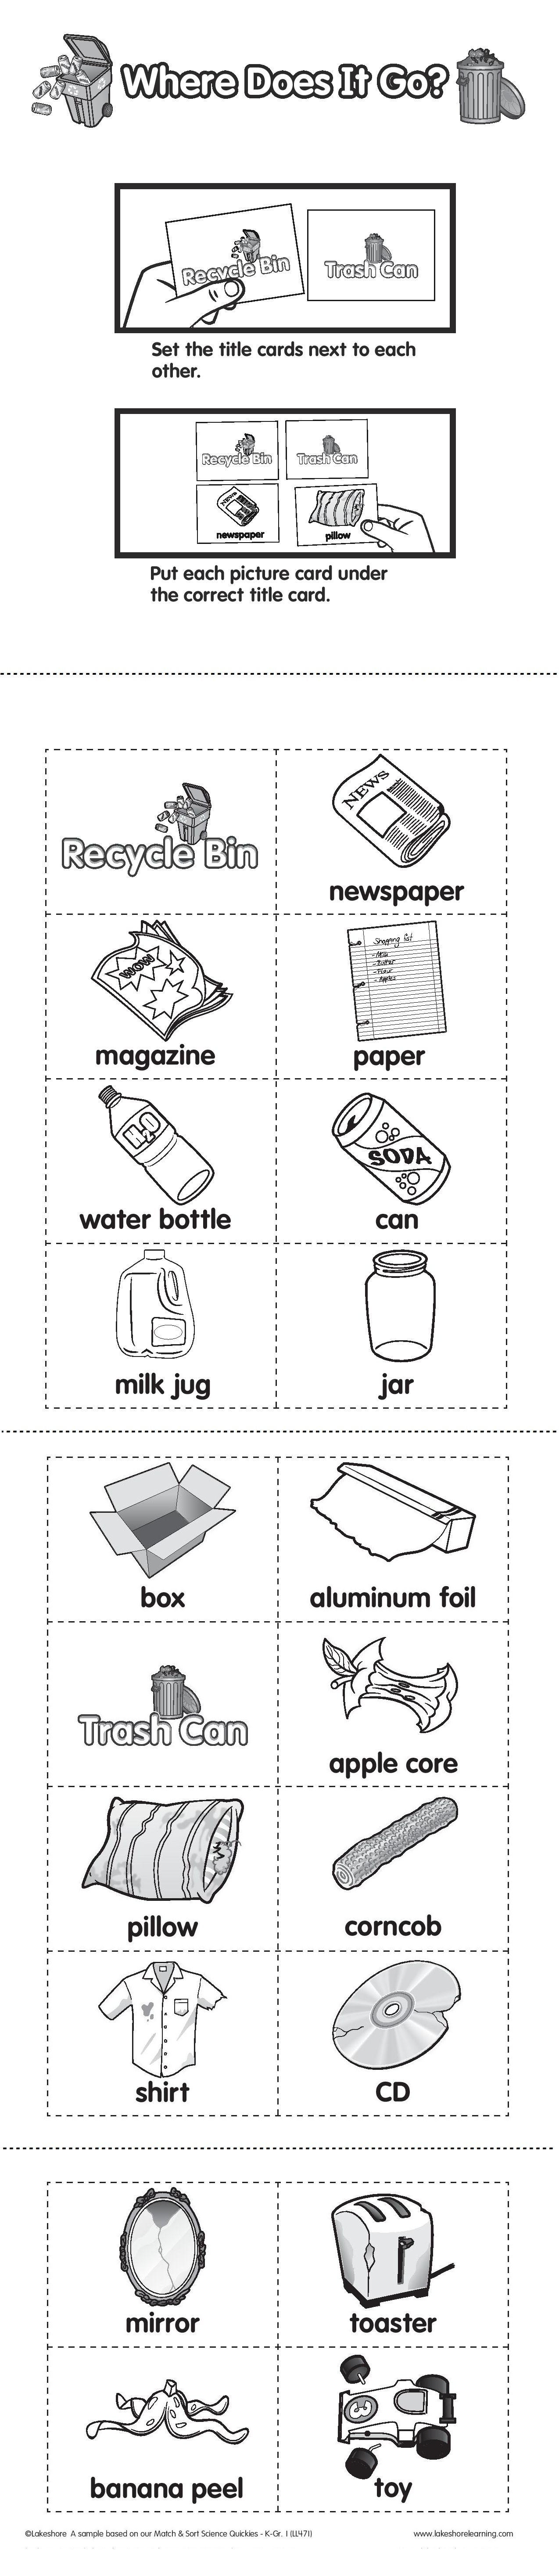 What Goes In The Recycle Bin And What Goes In The Trash